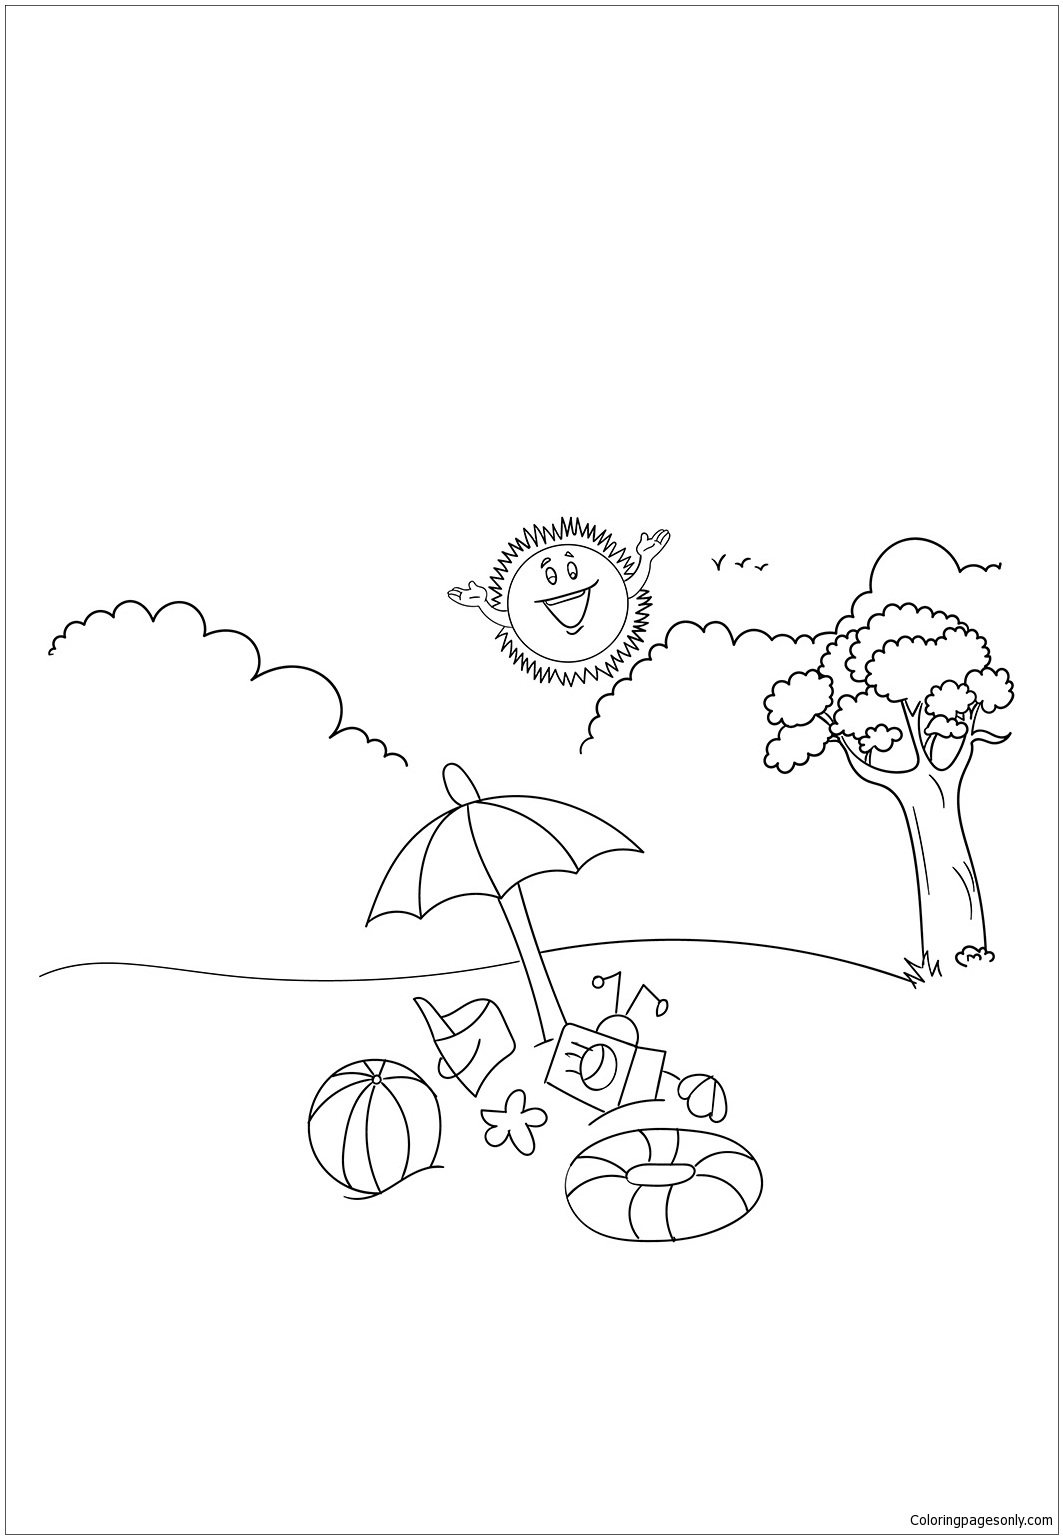 Summer vacation coloring page free coloring pages online for Summer vacation coloring pages